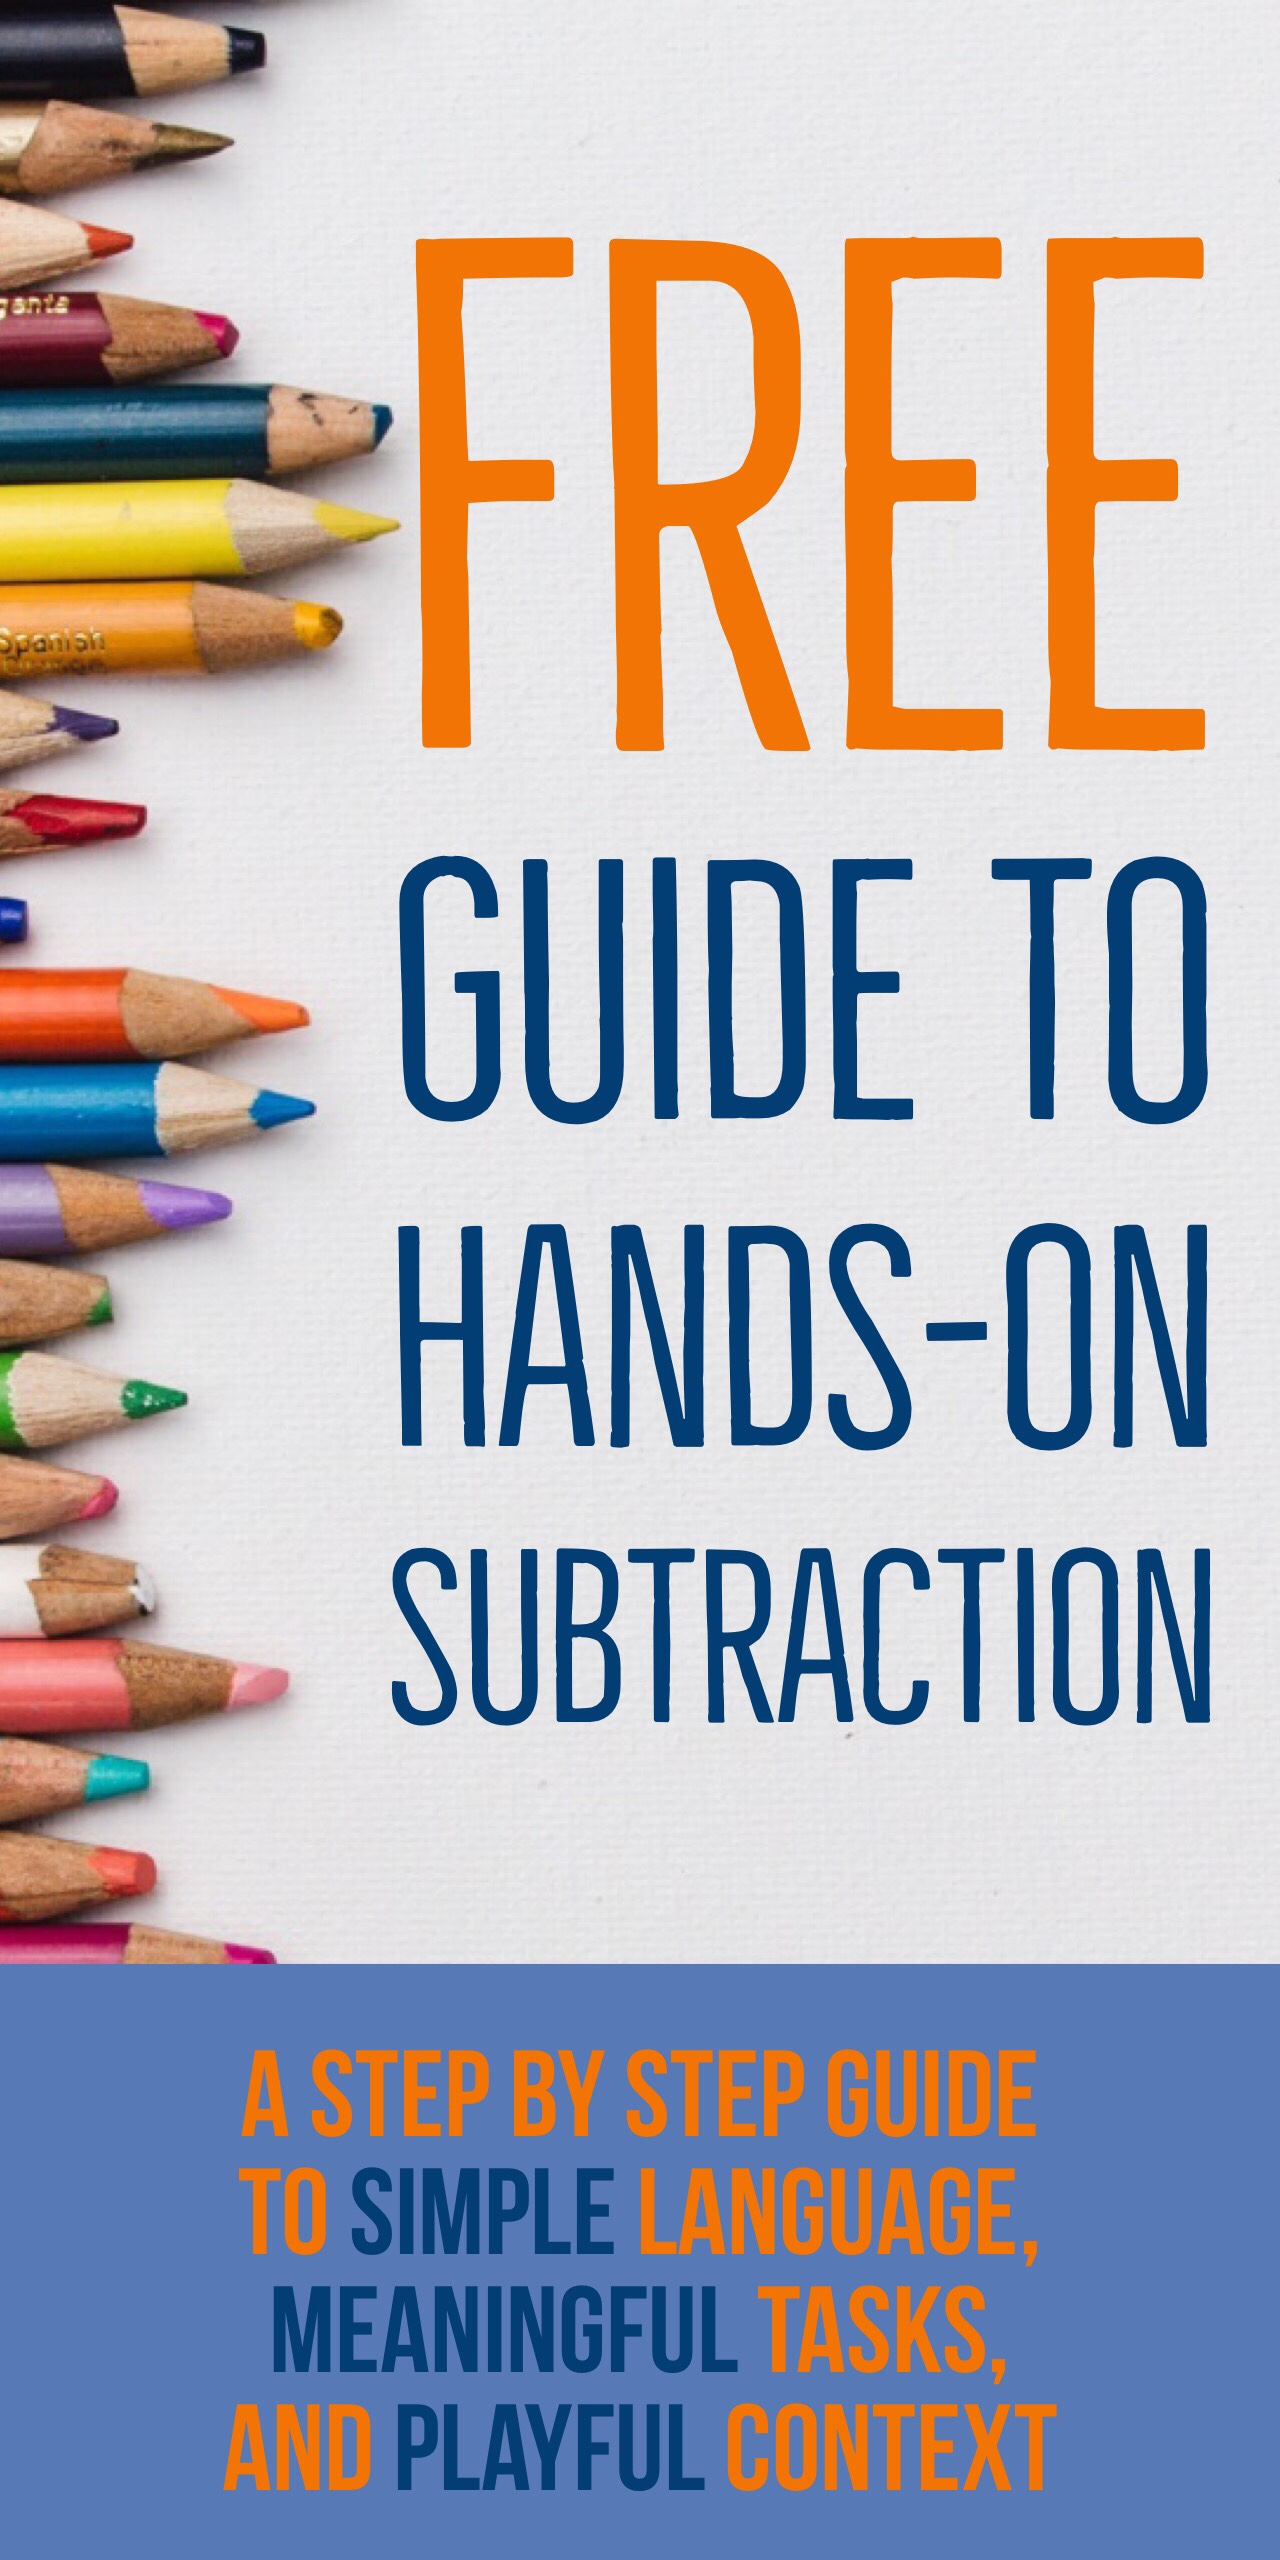 Even if you don't use Cuisenaire rods to teach subtraction, these language tips will set you up for success.  In this guide of 10 Ways to Teach Subtraction with Cuisenaire,  I lay a clear path for teaching subtraction that even makes for an easy transition into division later.